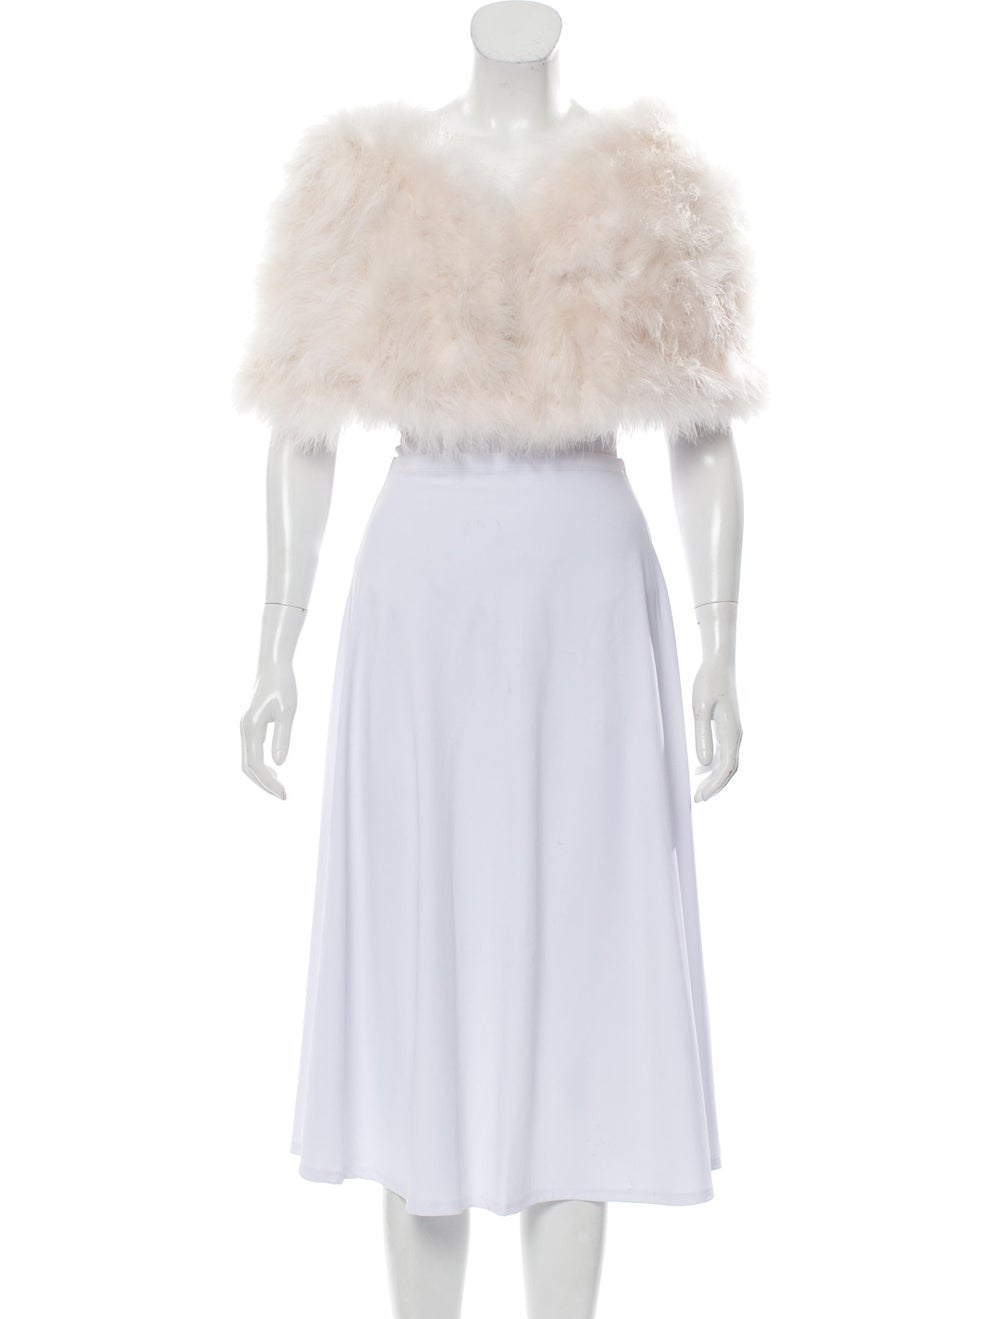 Annabelle Marabou Feather Capelet Pink - image 3